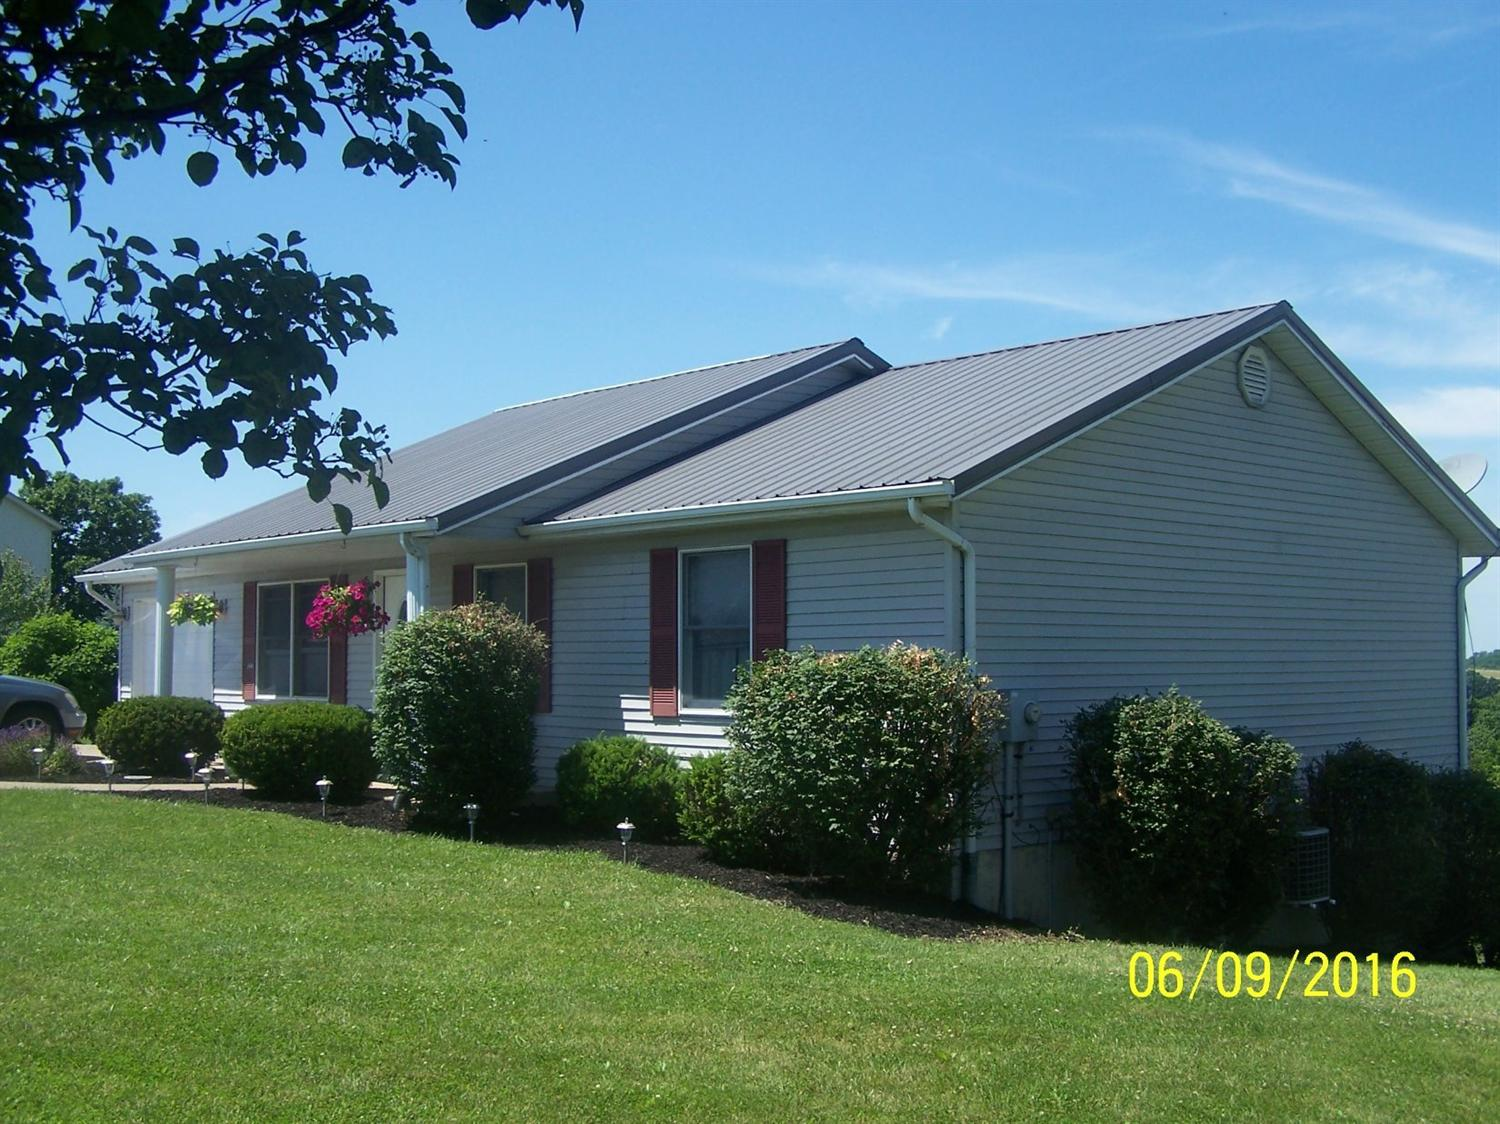 Photo 1 for 809 Humes Ridge Rd Williamstown, KY 41097